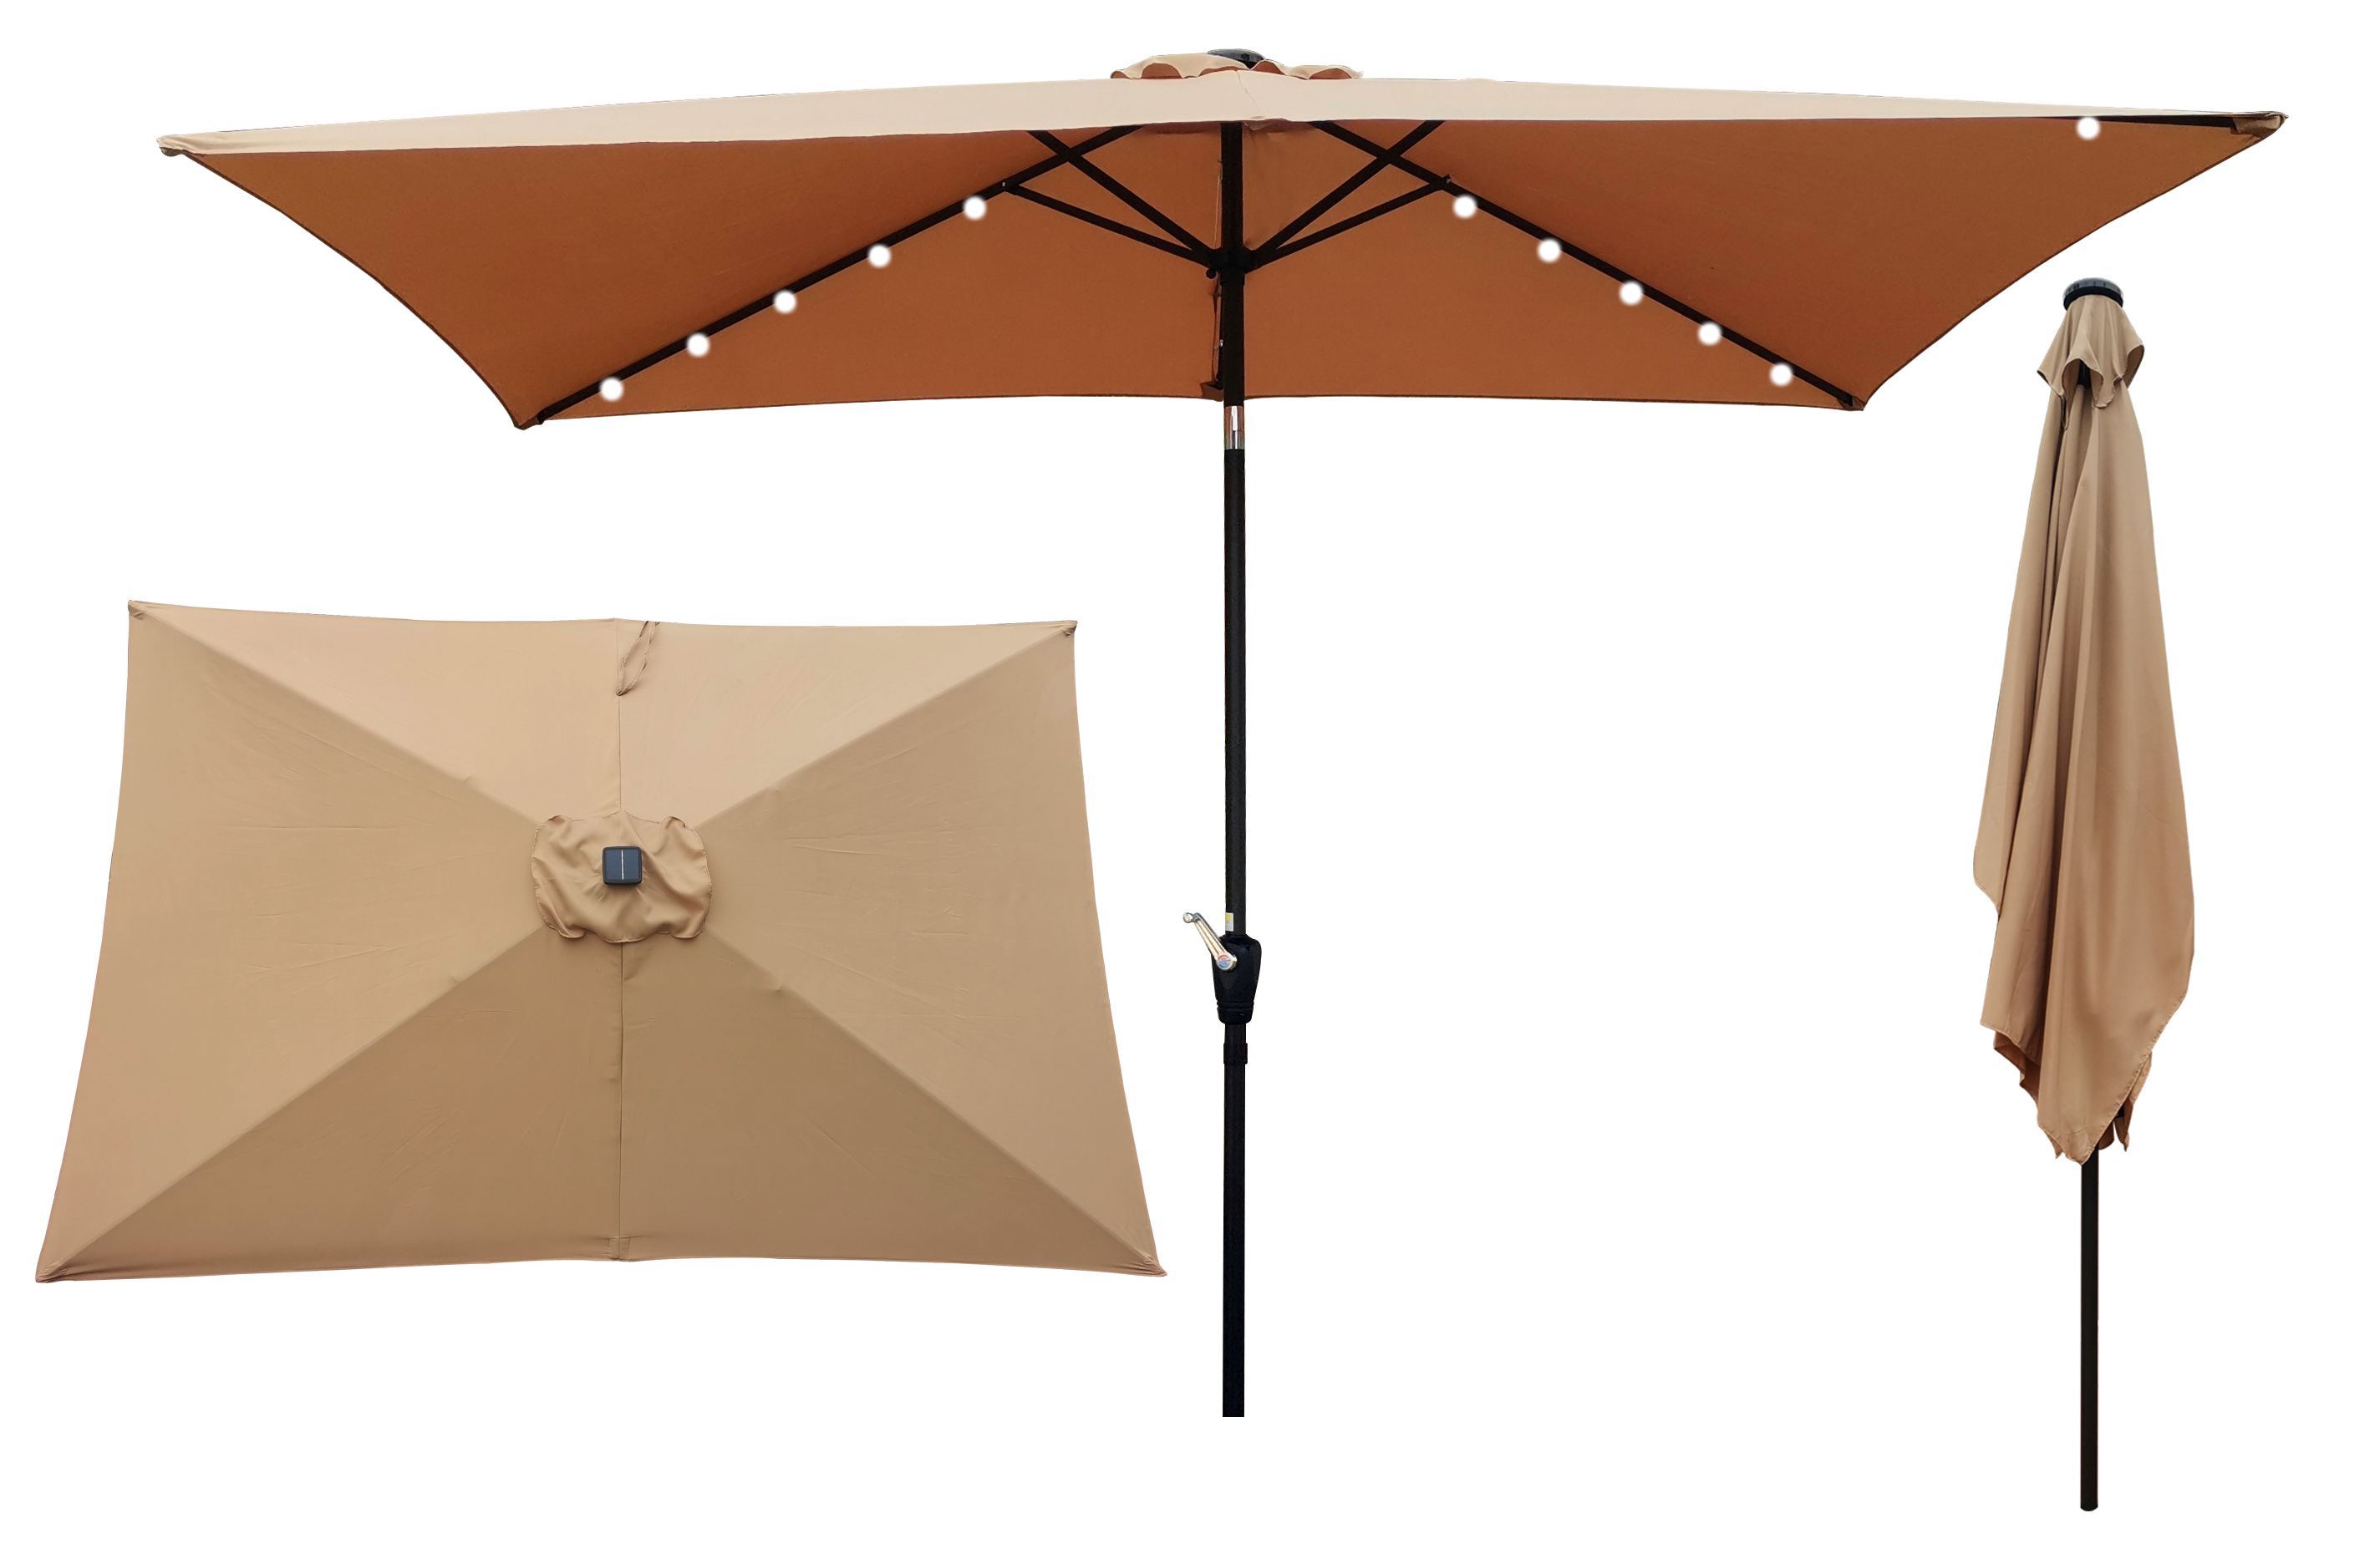 [US Direct] 10 x 6.5t Rectangular Patio Solar LED Lighted Outdoor Market Umbrellas with Crank & Push Button Tilt for Garden Shade Outside Swimming Pool